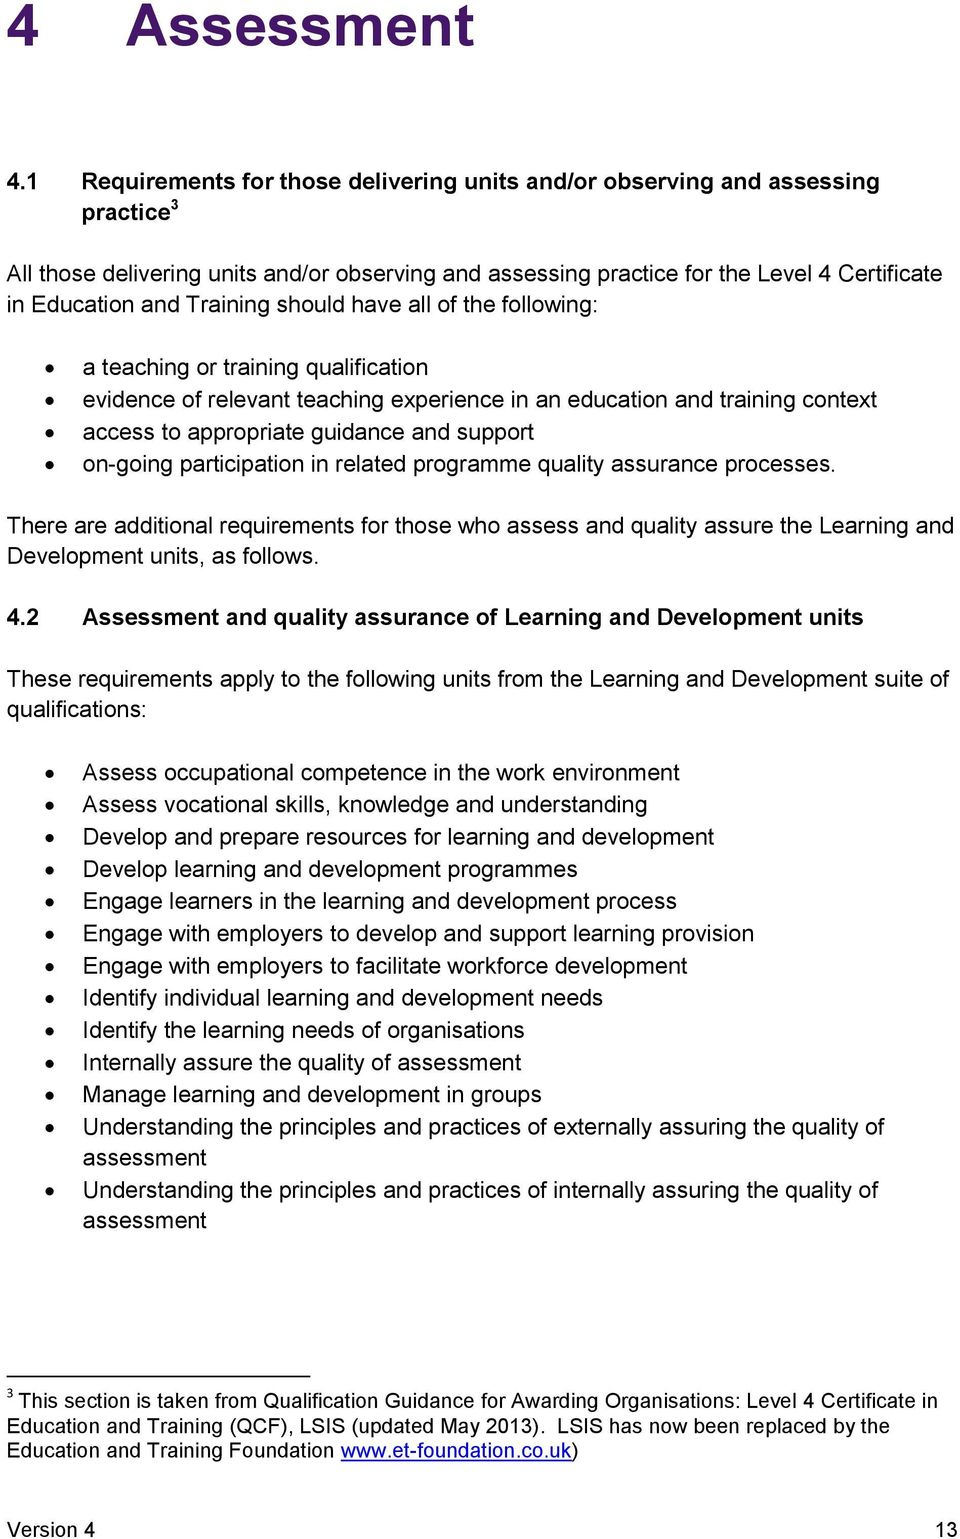 Training should have all of the following: a teaching or training qualification evidence of relevant teaching experience in an education and training context access to appropriate guidance and